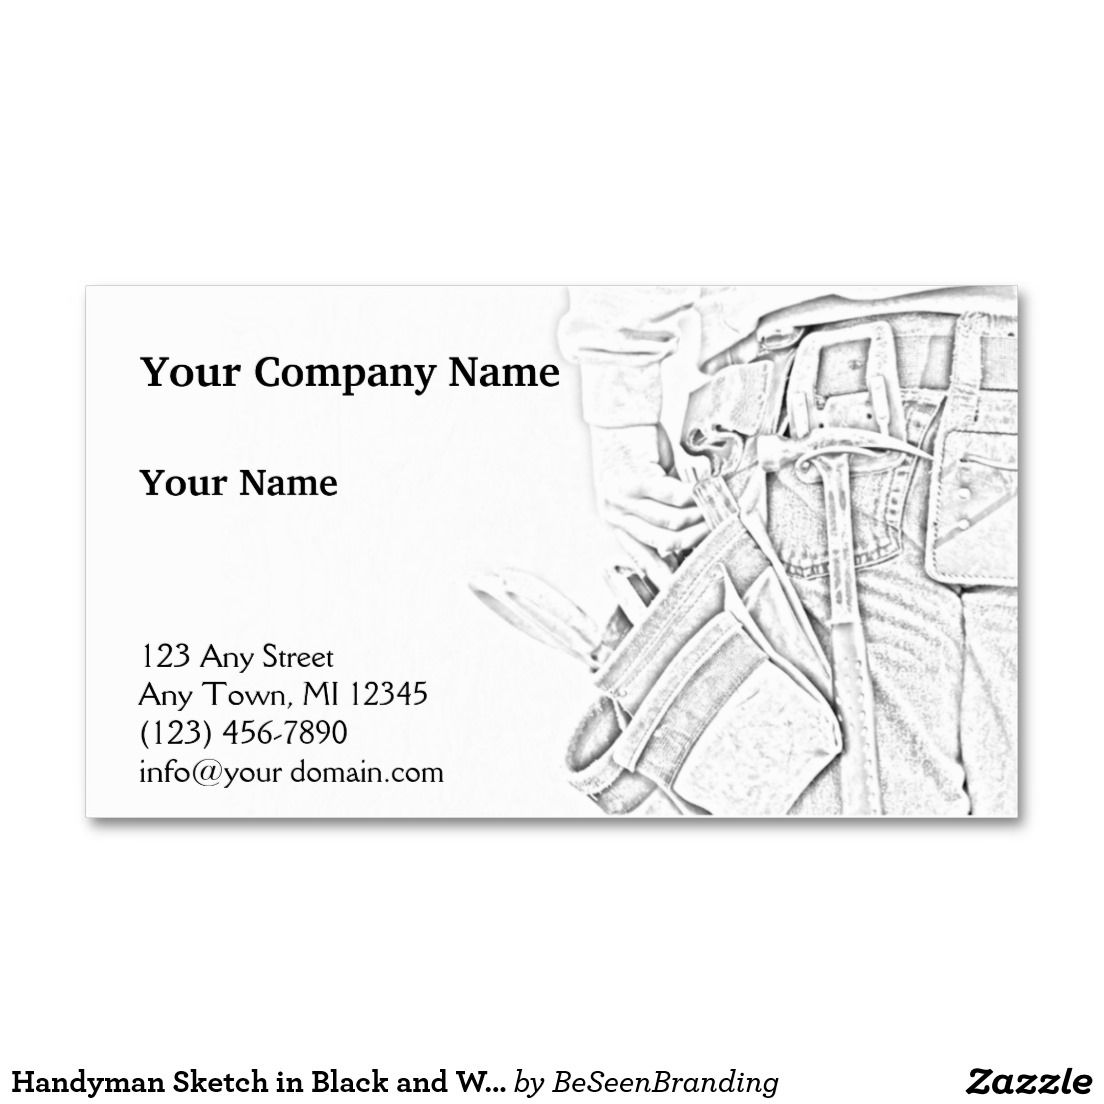 Handyman sketch in black and white business business card